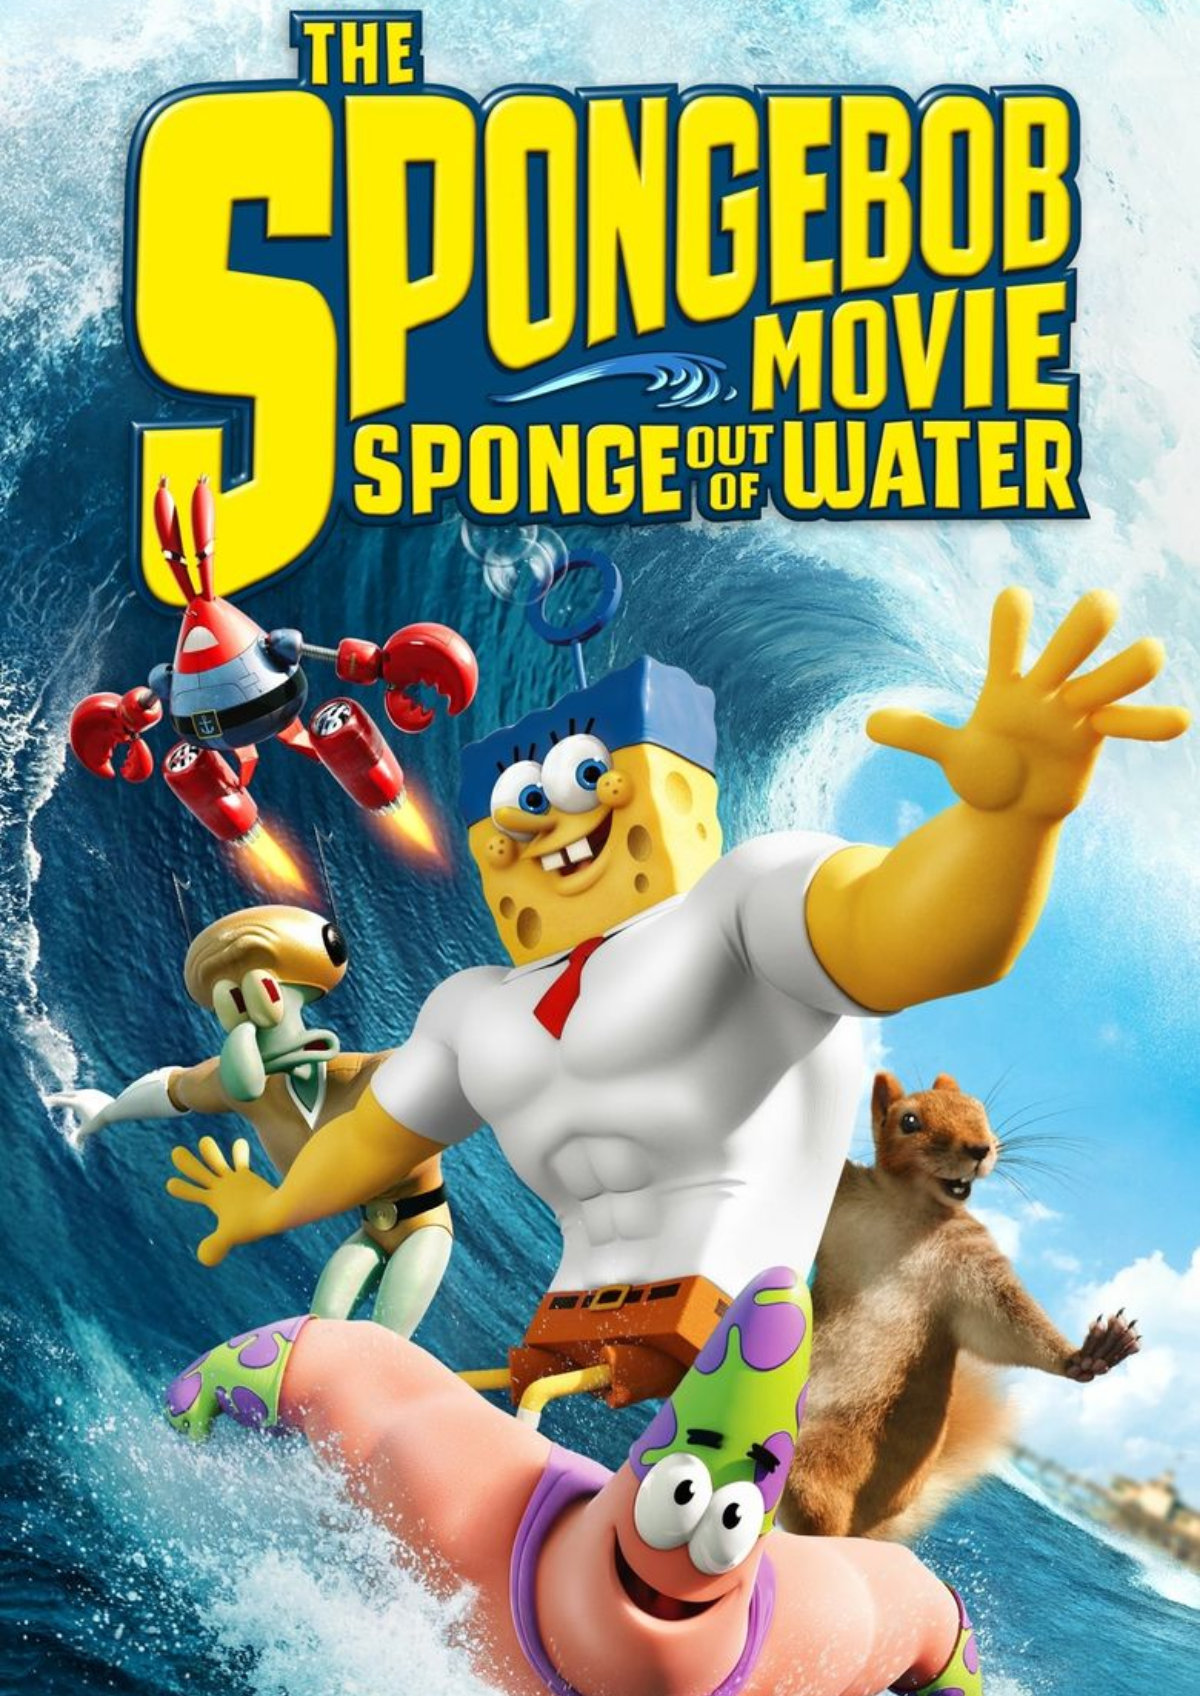 'The SpongeBob Movie: Sponge Out Of Water' movie poster